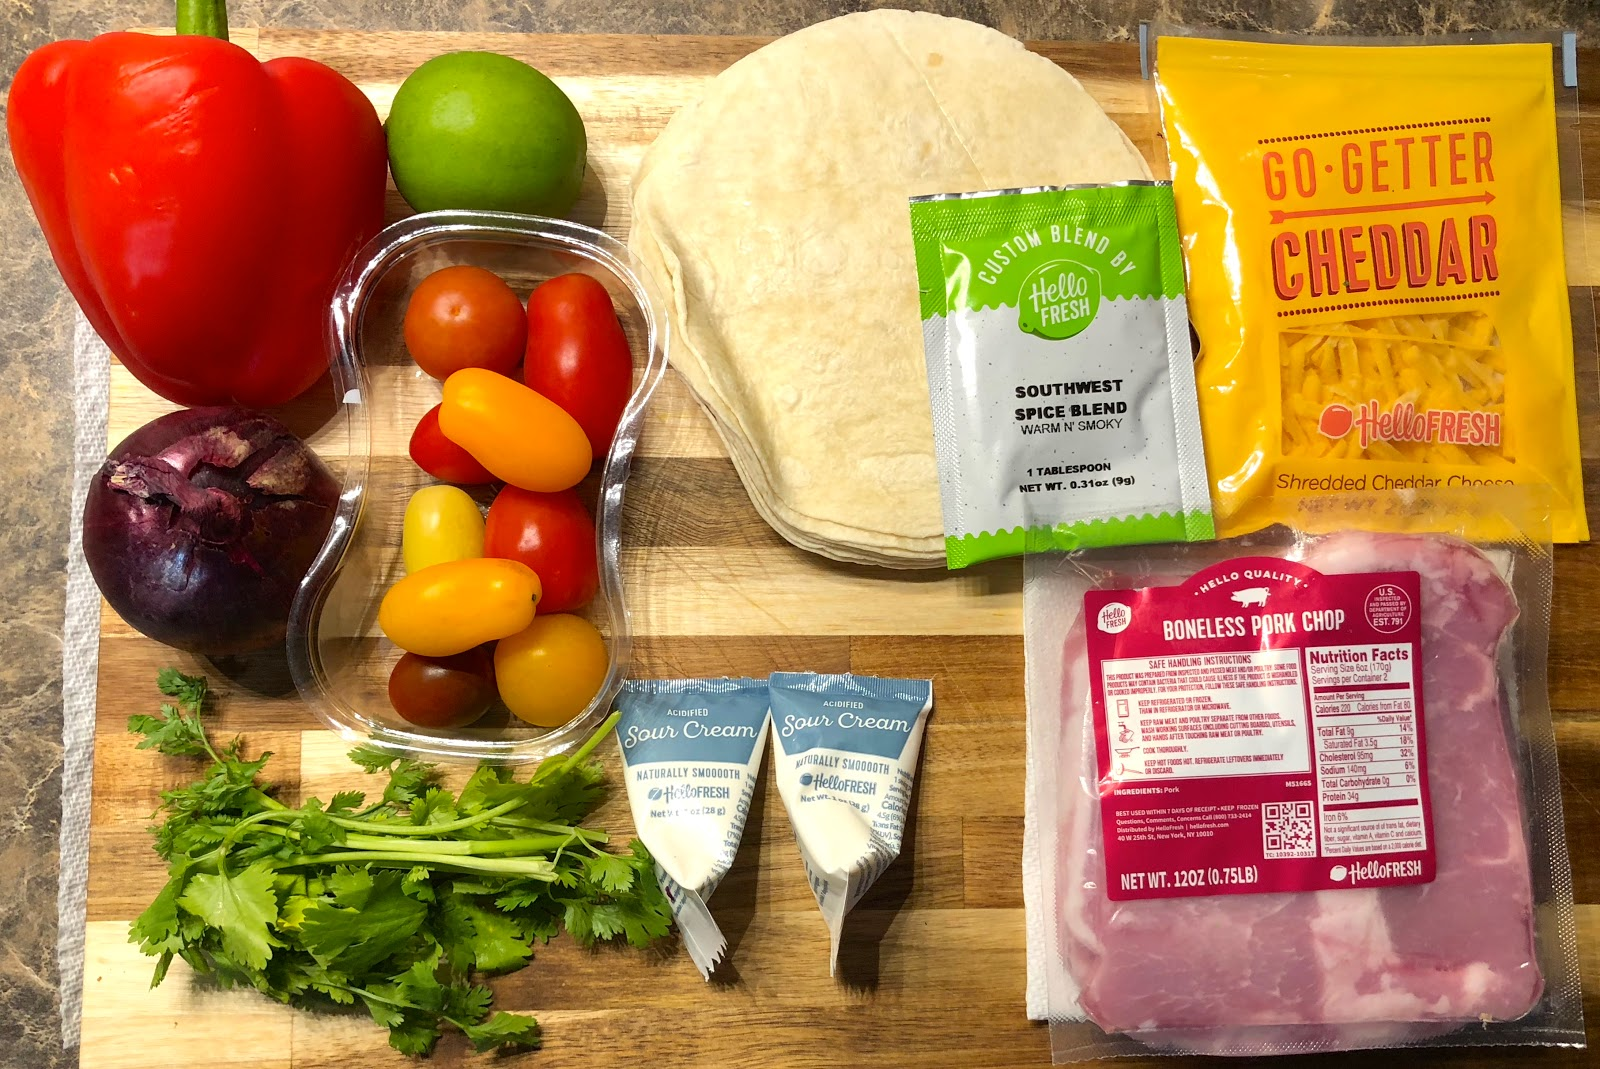 22nd Hello Fresh Meal Kit Delivery Review & $40 Coupon - Blue Skies for Me Please